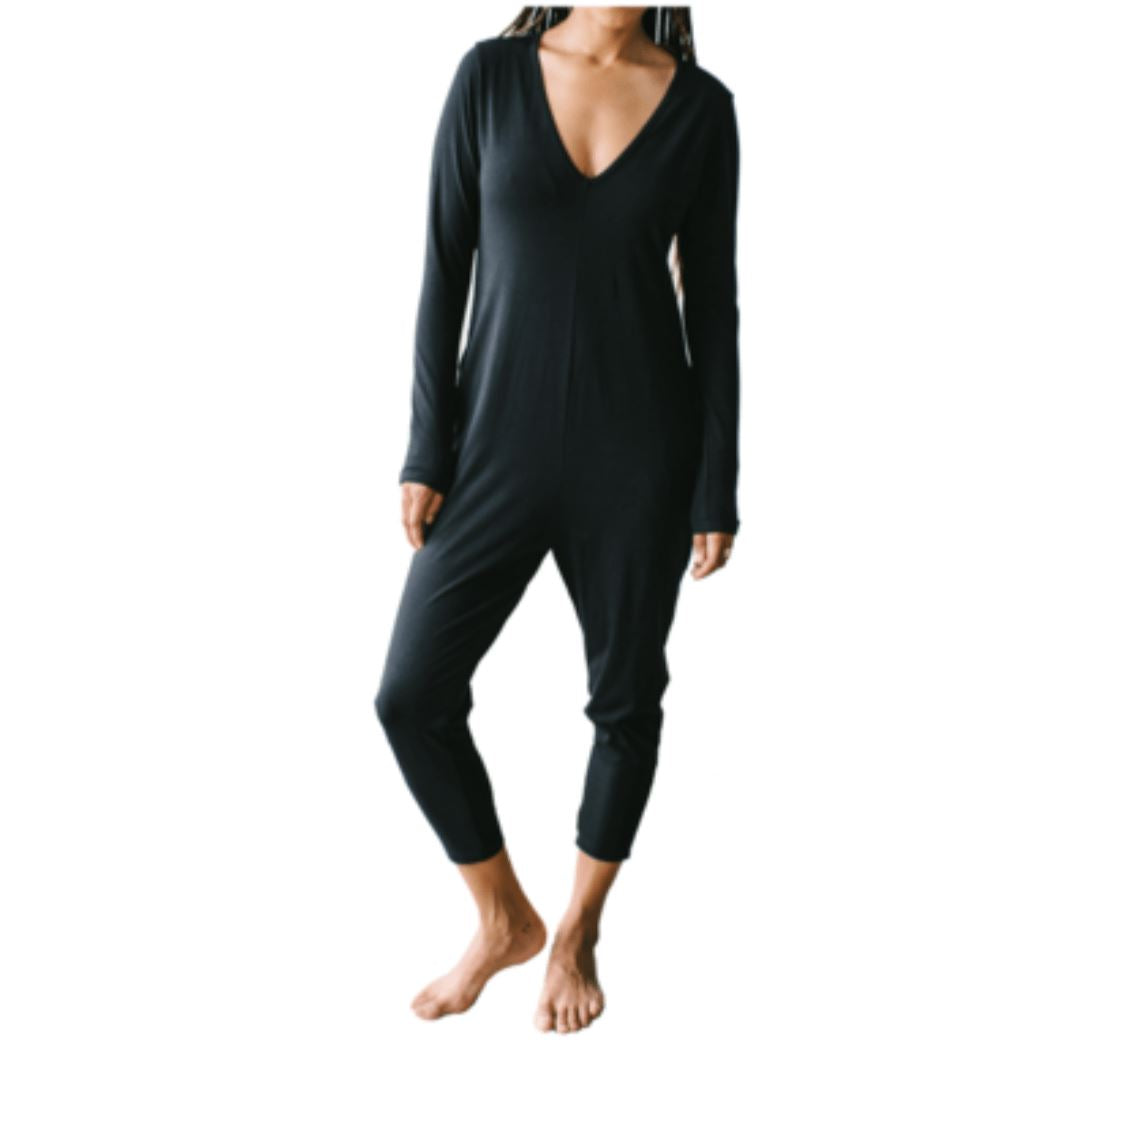 Smash + Tess- Friday Romper In Midnight Black Jumpsuits / Rompers Smash+Tess